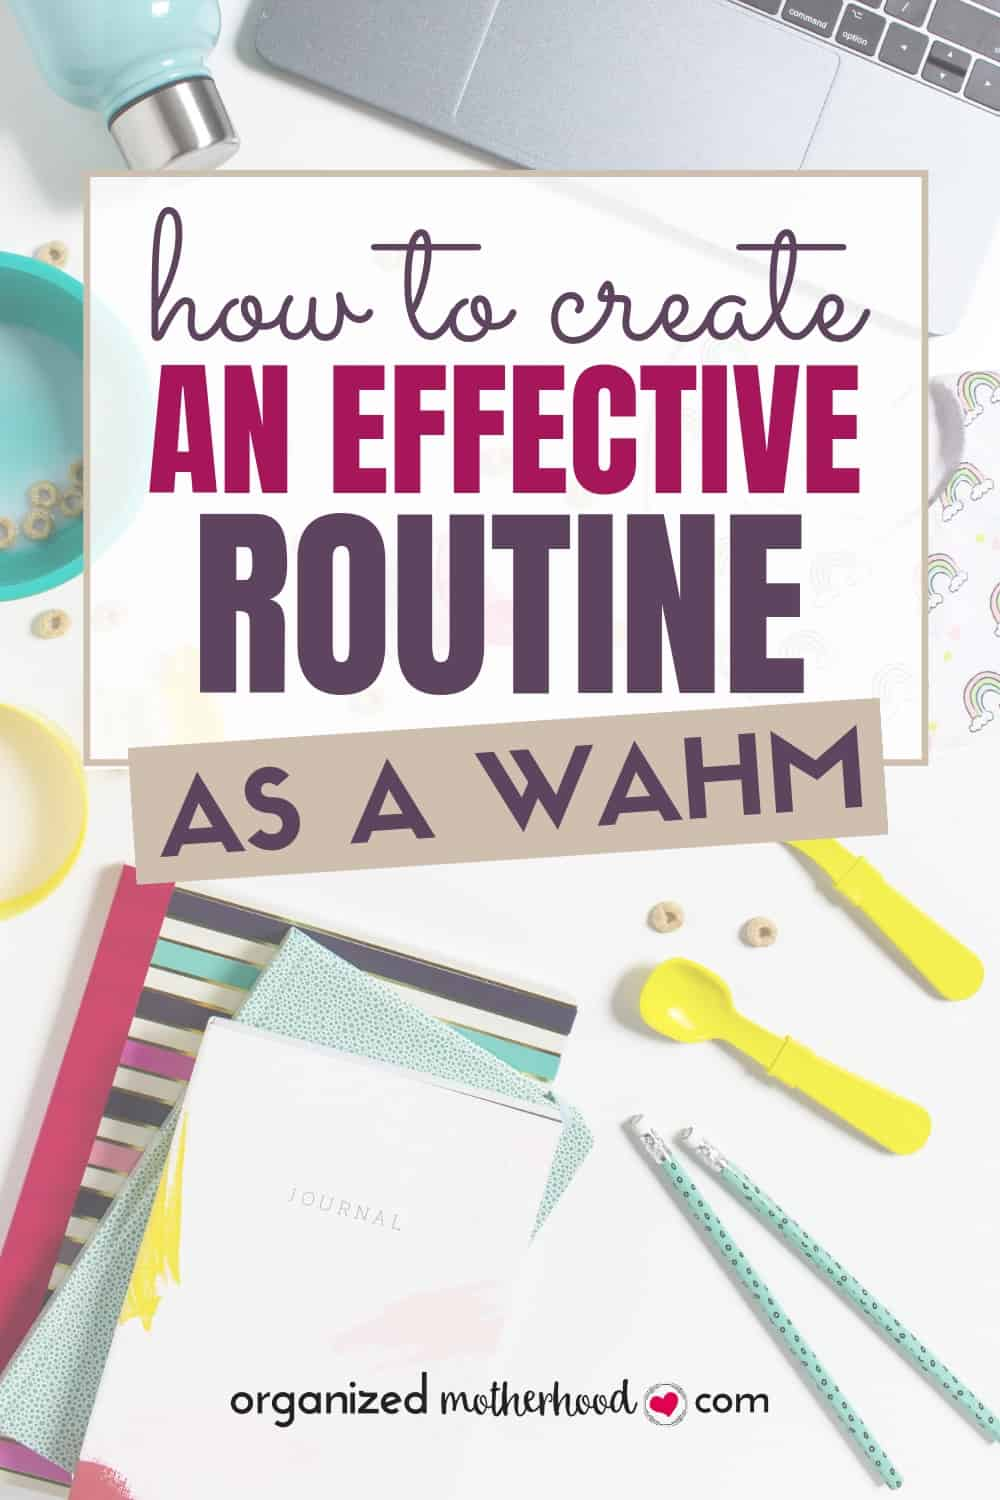 Trying to work from home with kids in the house? Use these simple tips to stay organized and productive while creating a routine that works! #productivity #timemanagement #wahm